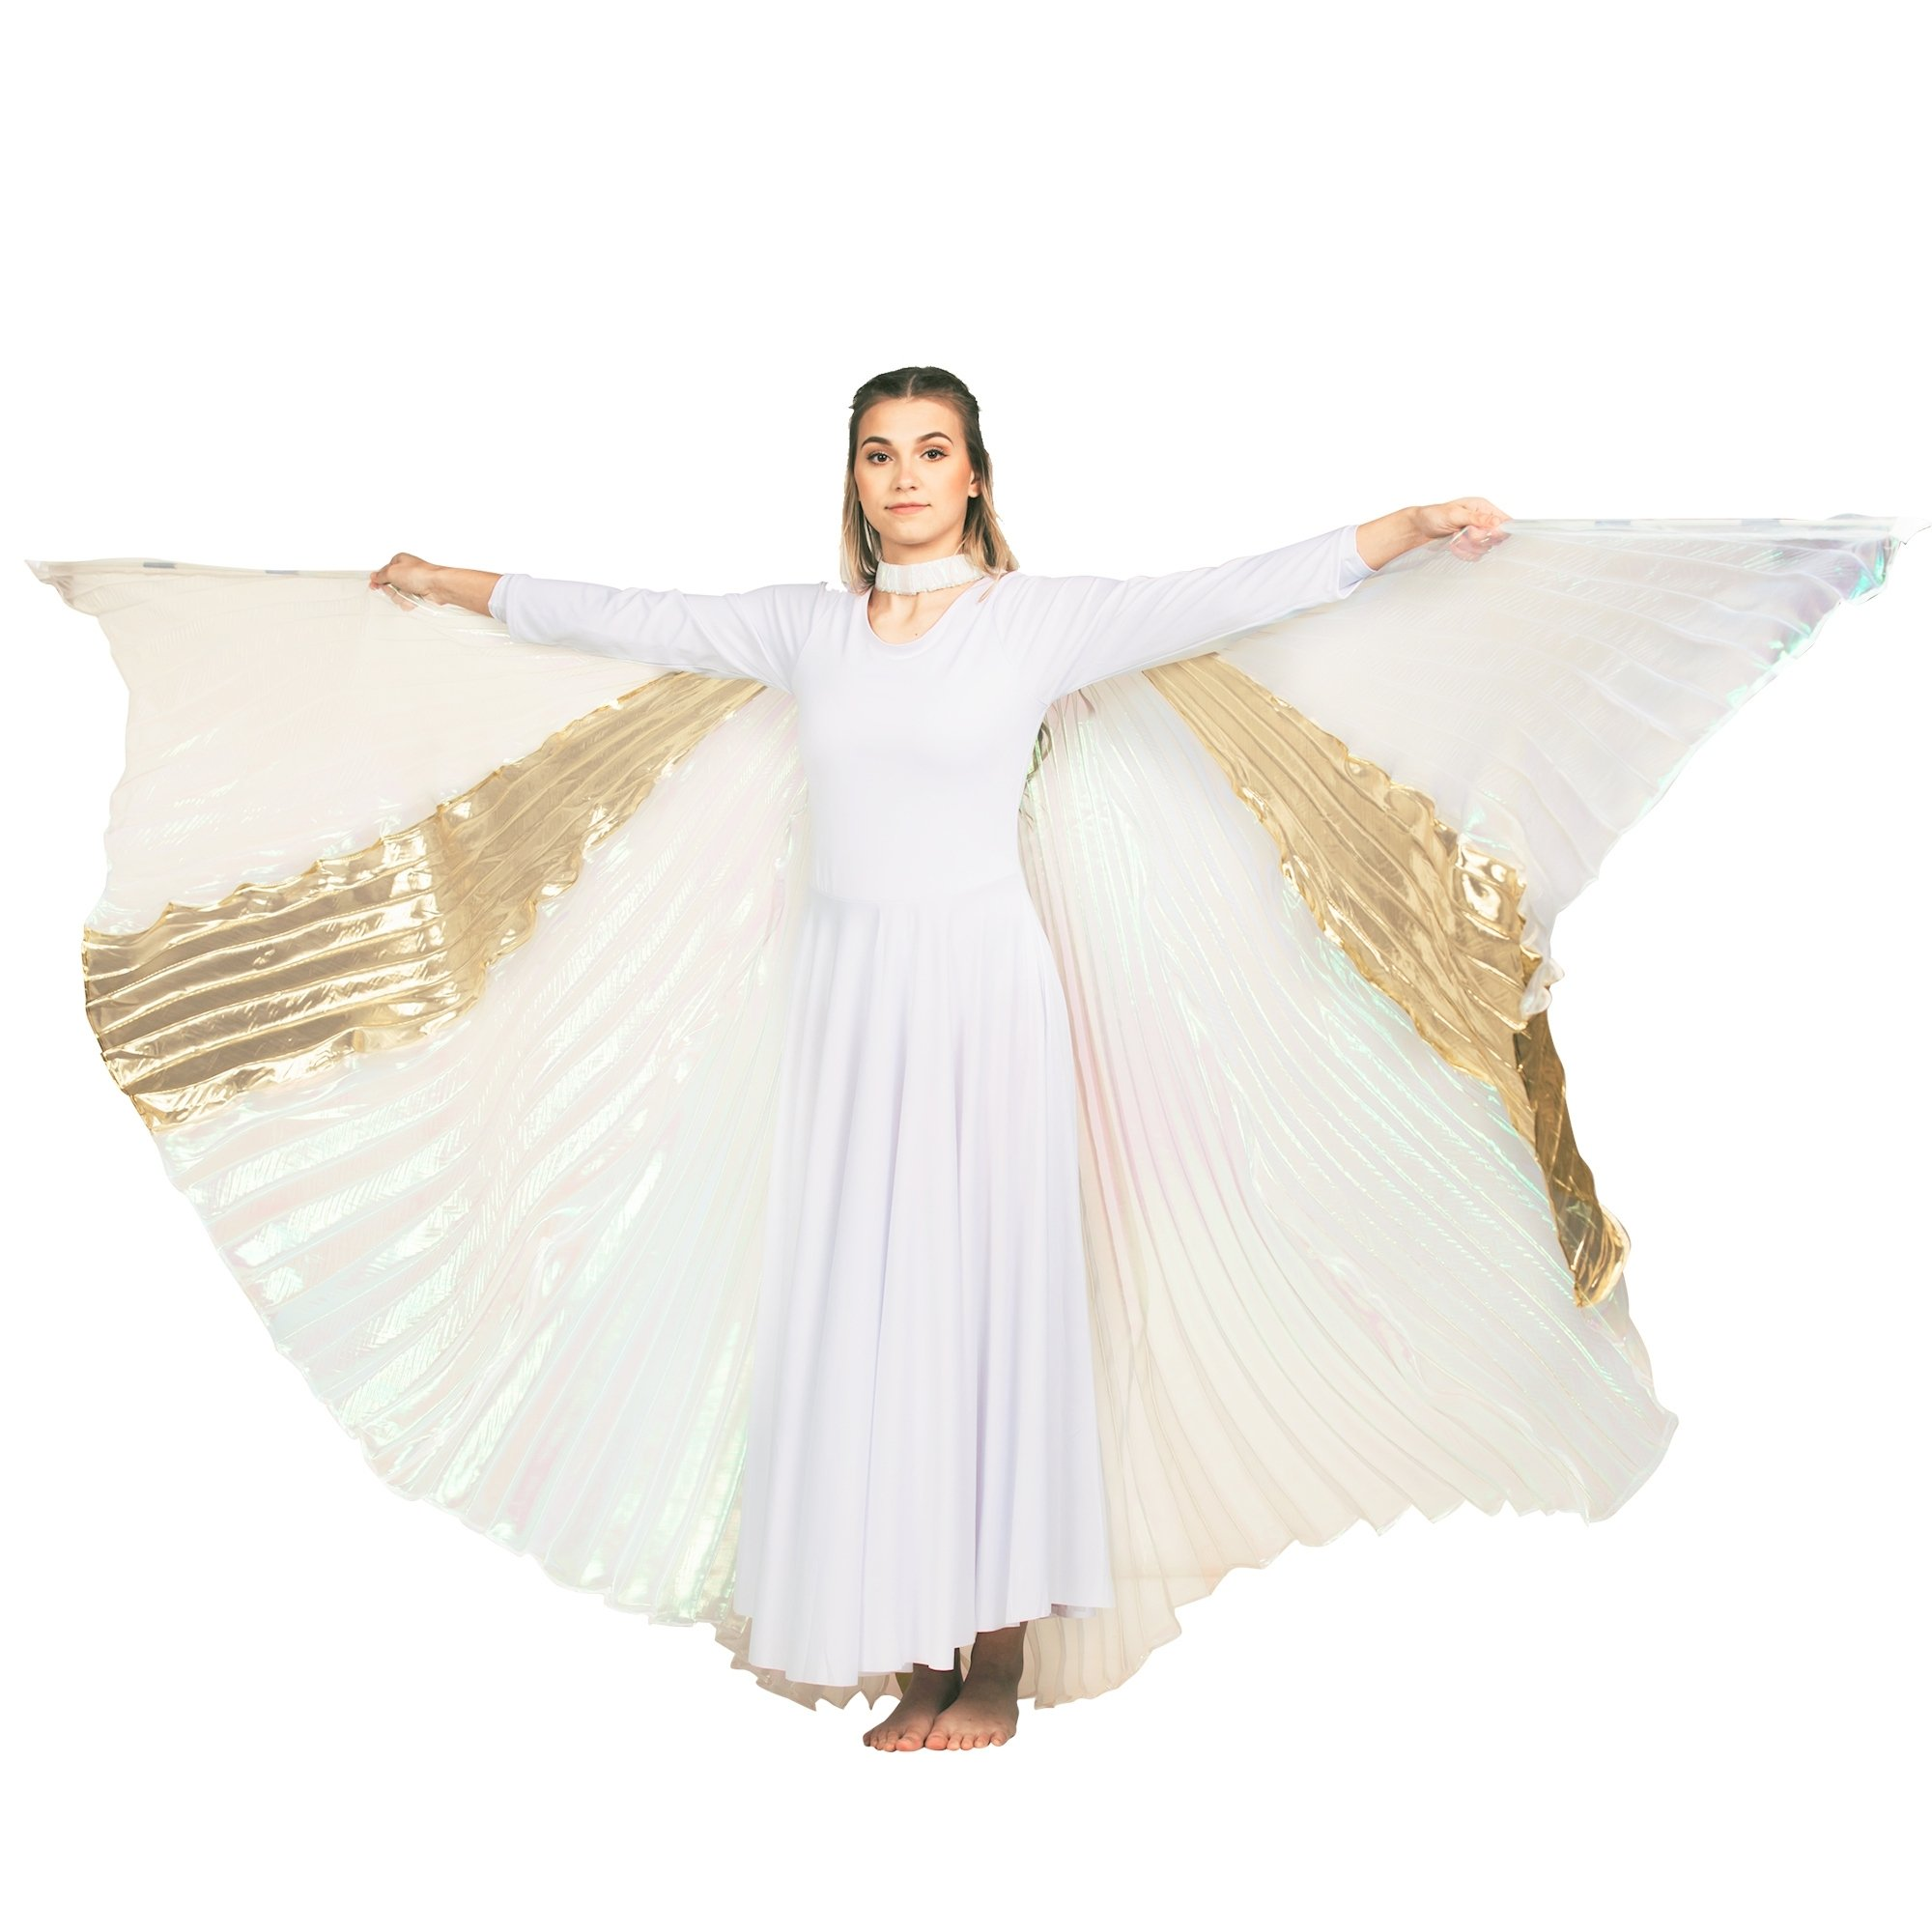 Transparent Gold-White Cross Worship Angel Wing